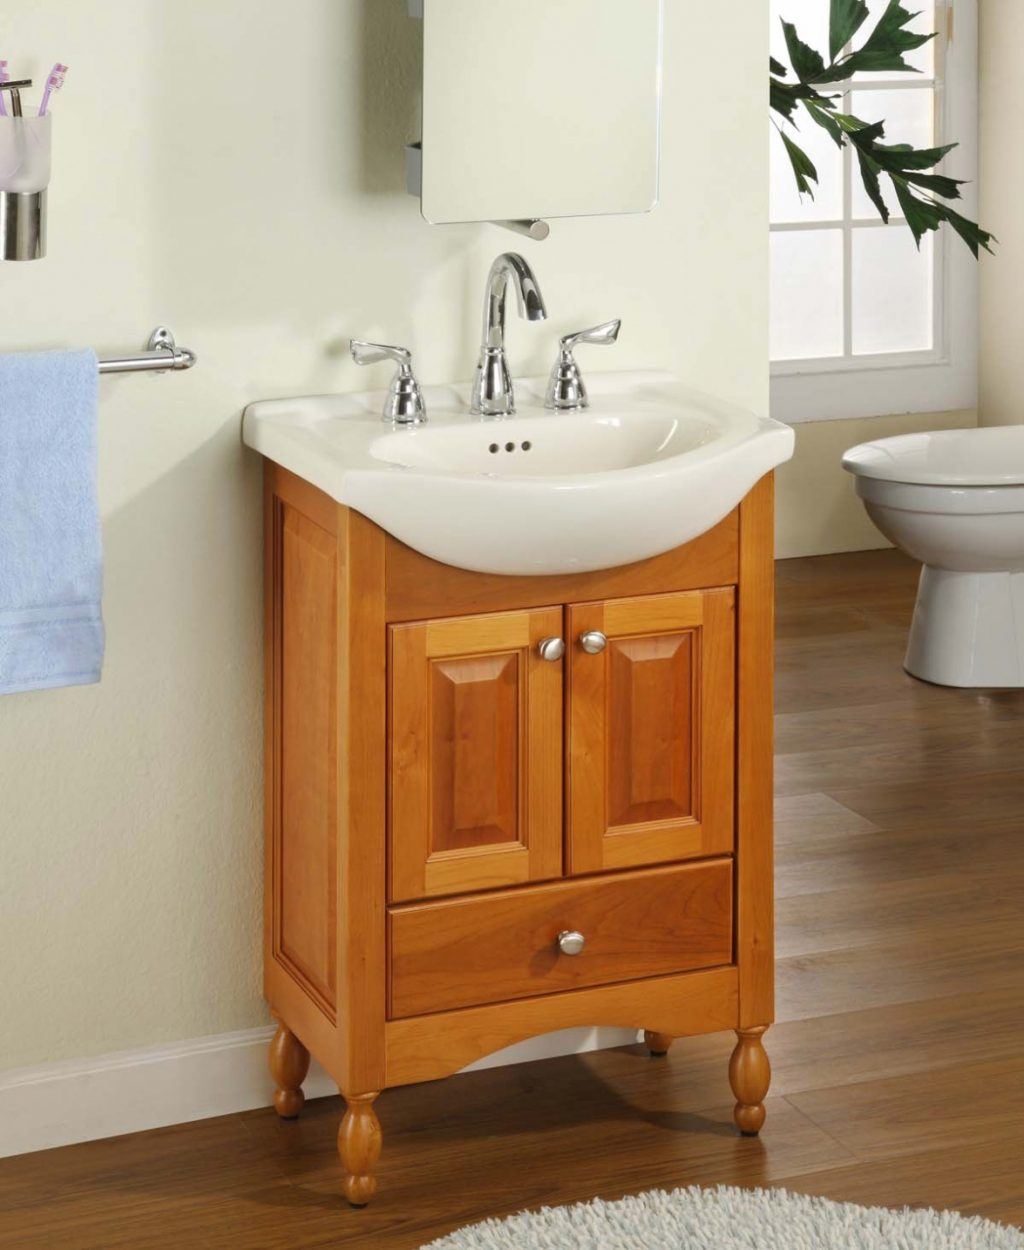 Bath Shallow Depth Bathroom Vanity Chiefkessler Within Bathroom